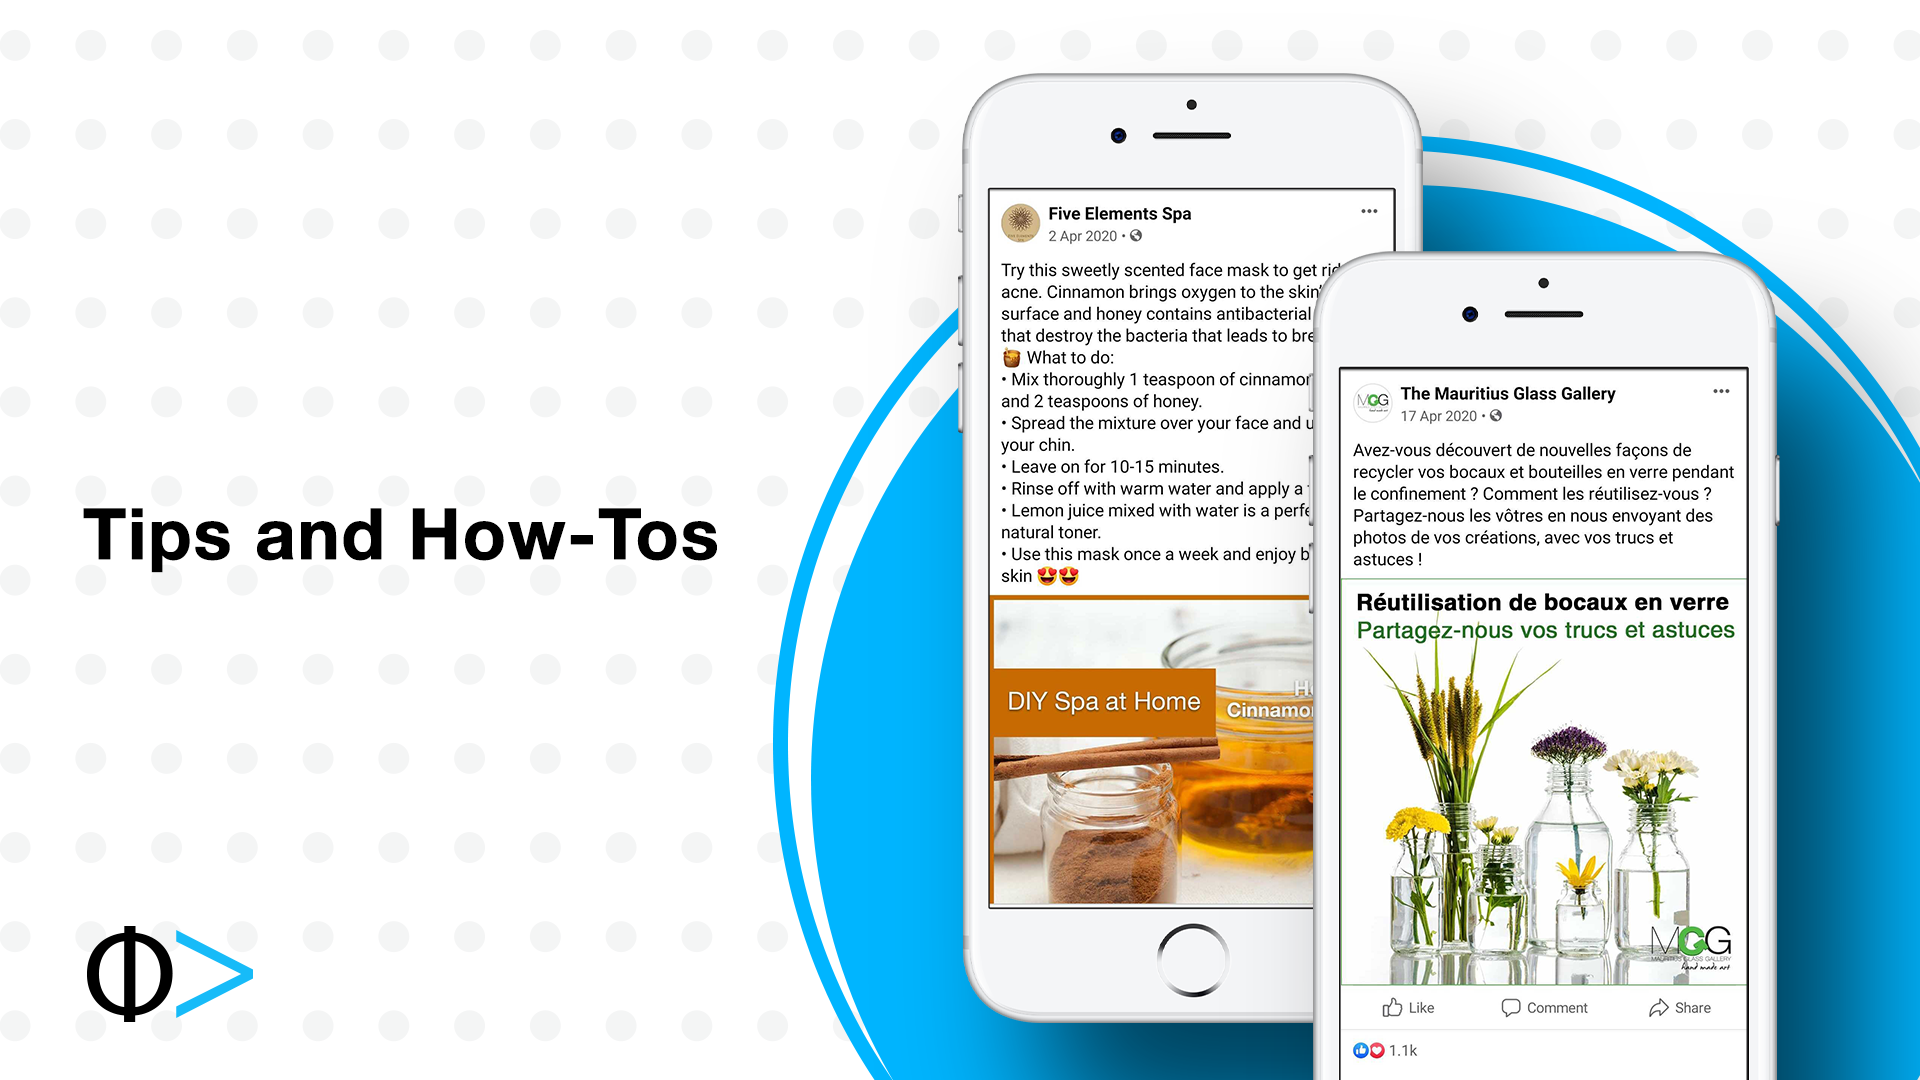 6_tips and how tos_Blog_template.png